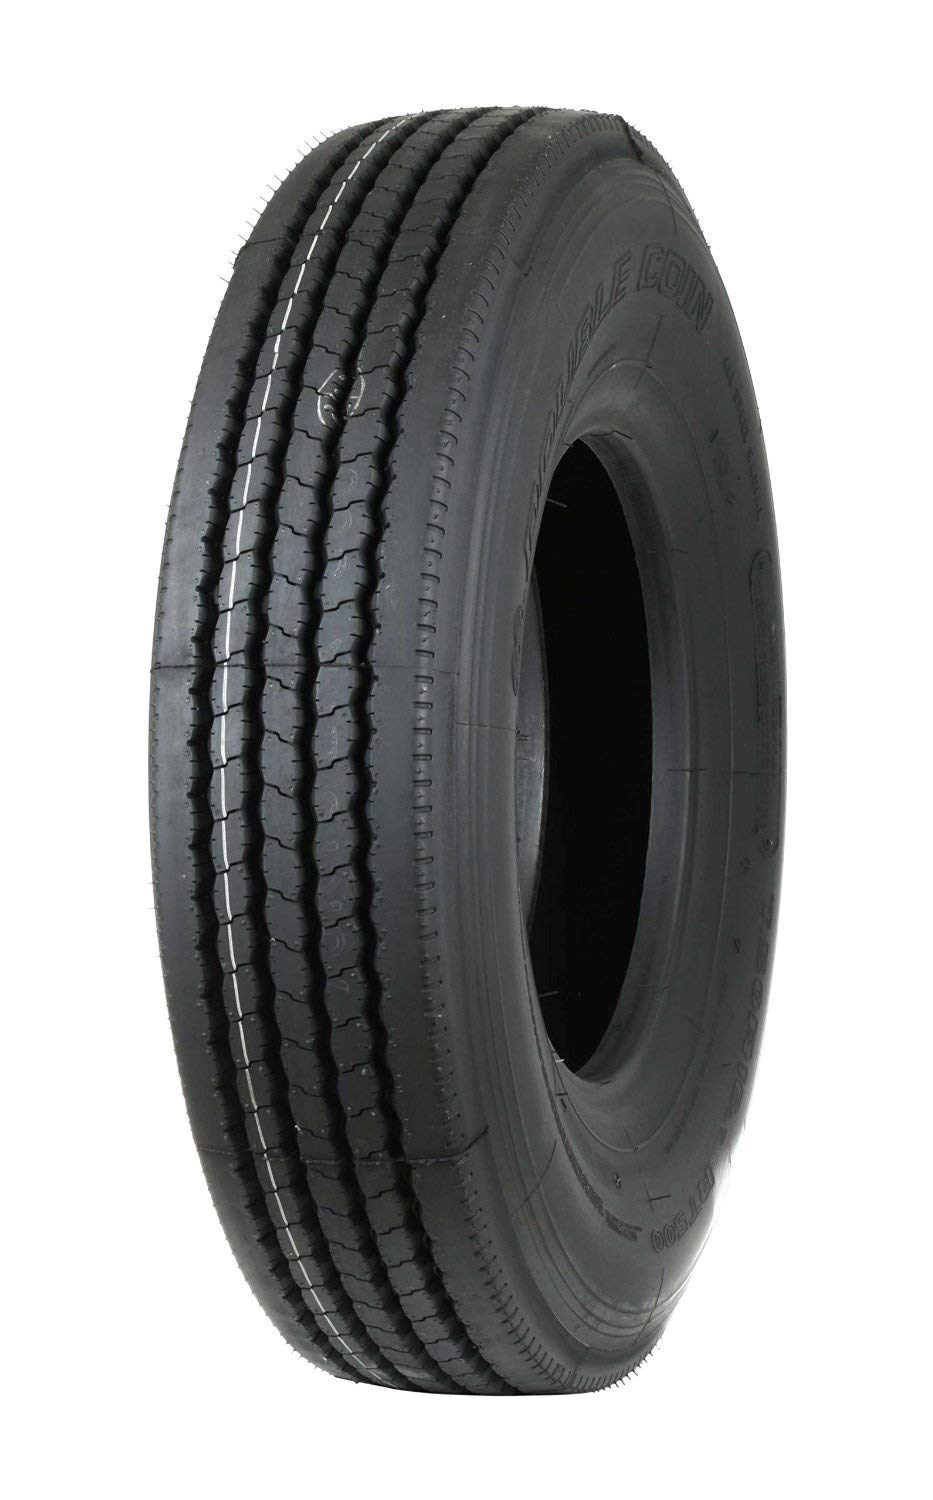 Commercial Truck Tire - 9R22.5 14 ply by UNILLI